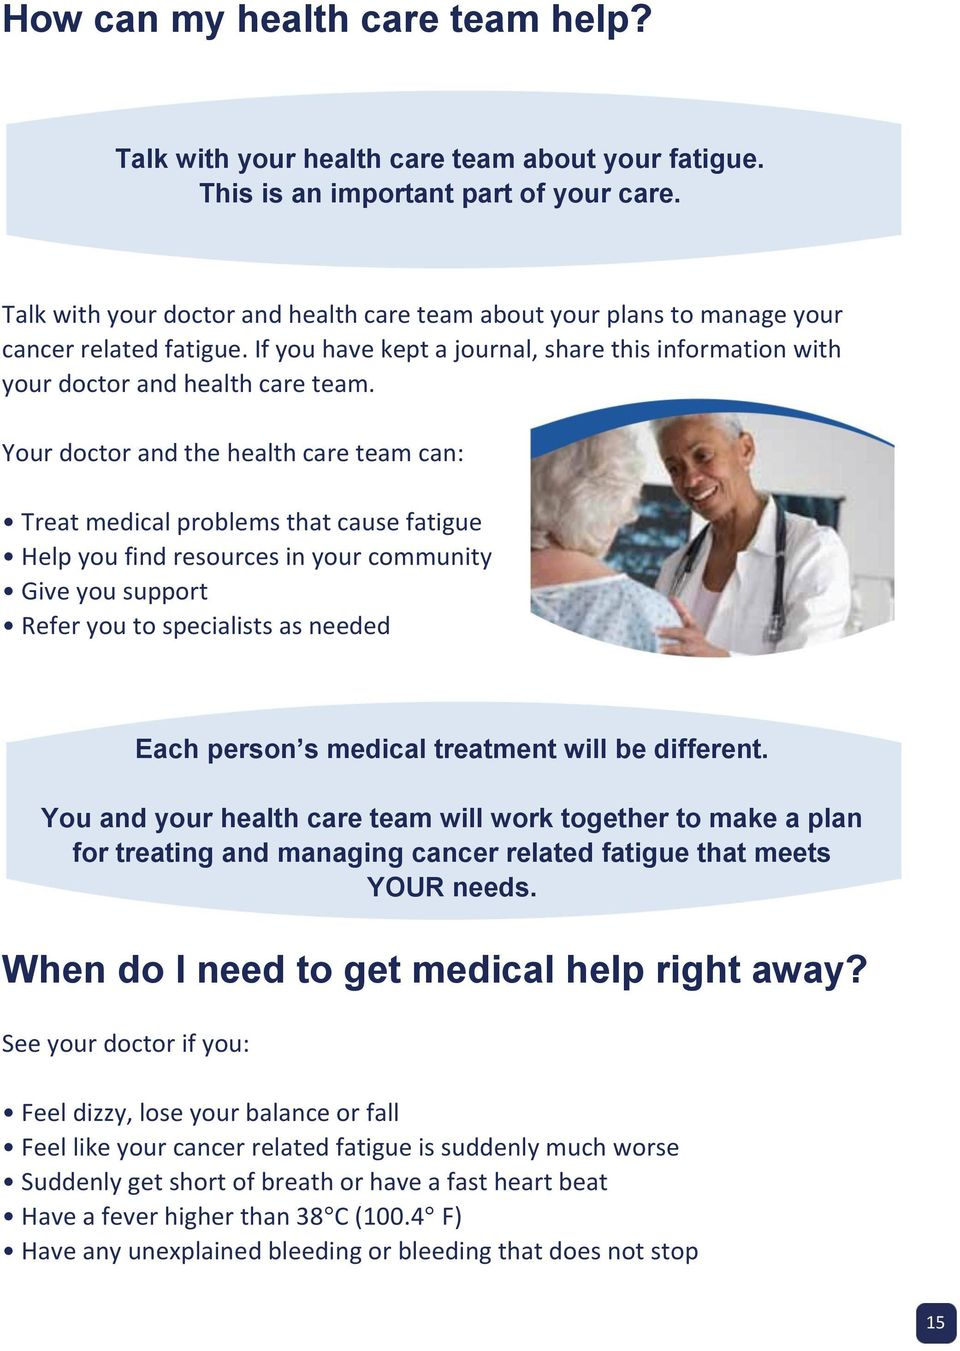 Your doctor and the health care team can: Treat medical problems that cause fatigue Help you find resources in your community Give you support Refer you to specialists as needed When do I need to get